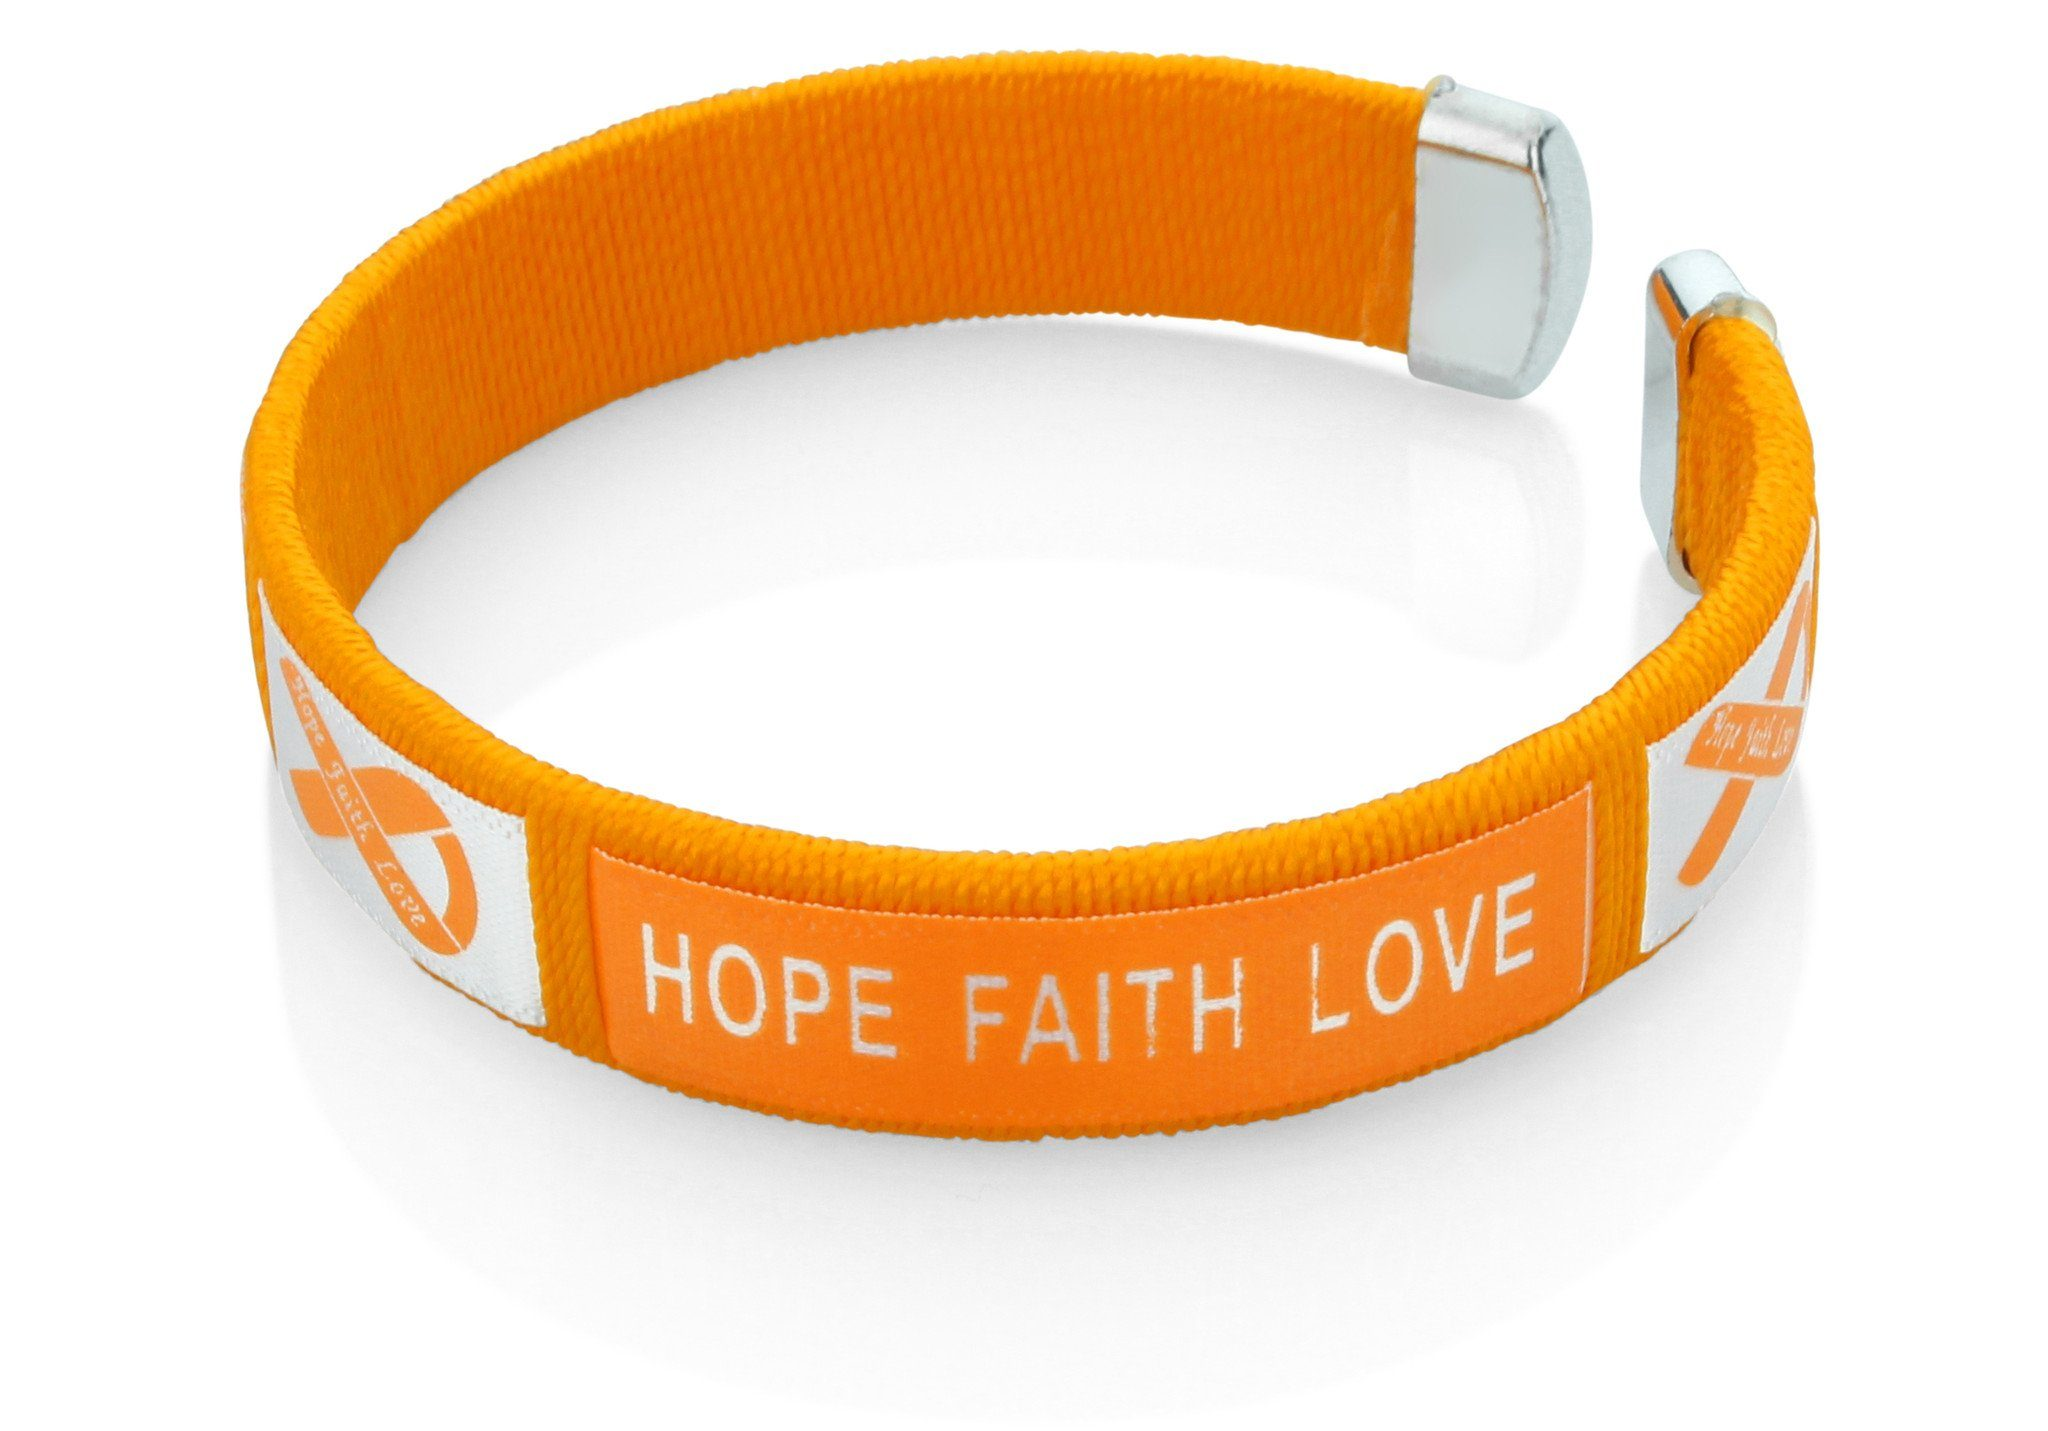 a shop c supplies party stickers index leukemia open awareness campaign tattoo bracelet products ribbon canada orange pk